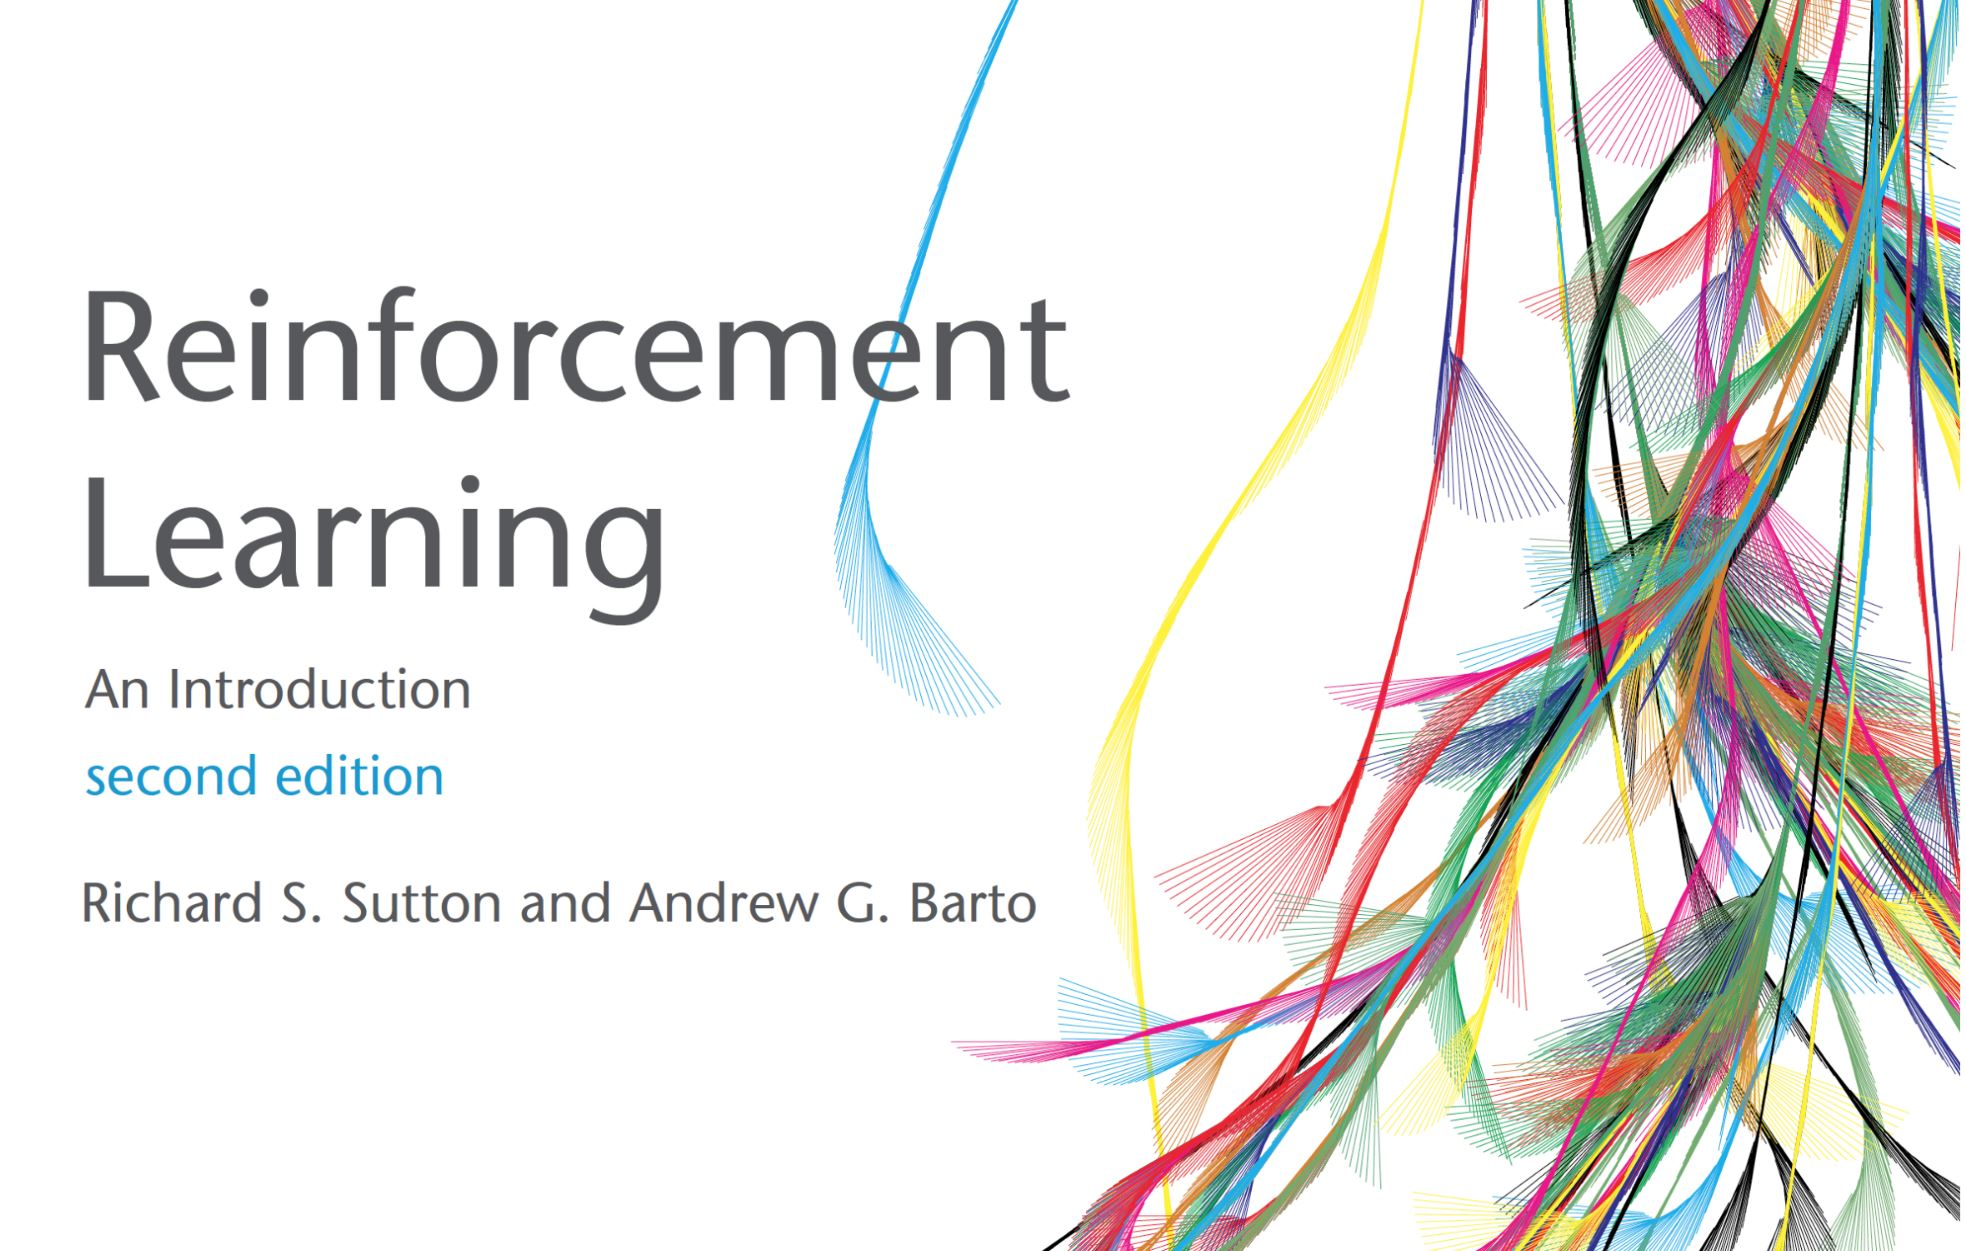 Reinforcement Learning: An Introduction textbook